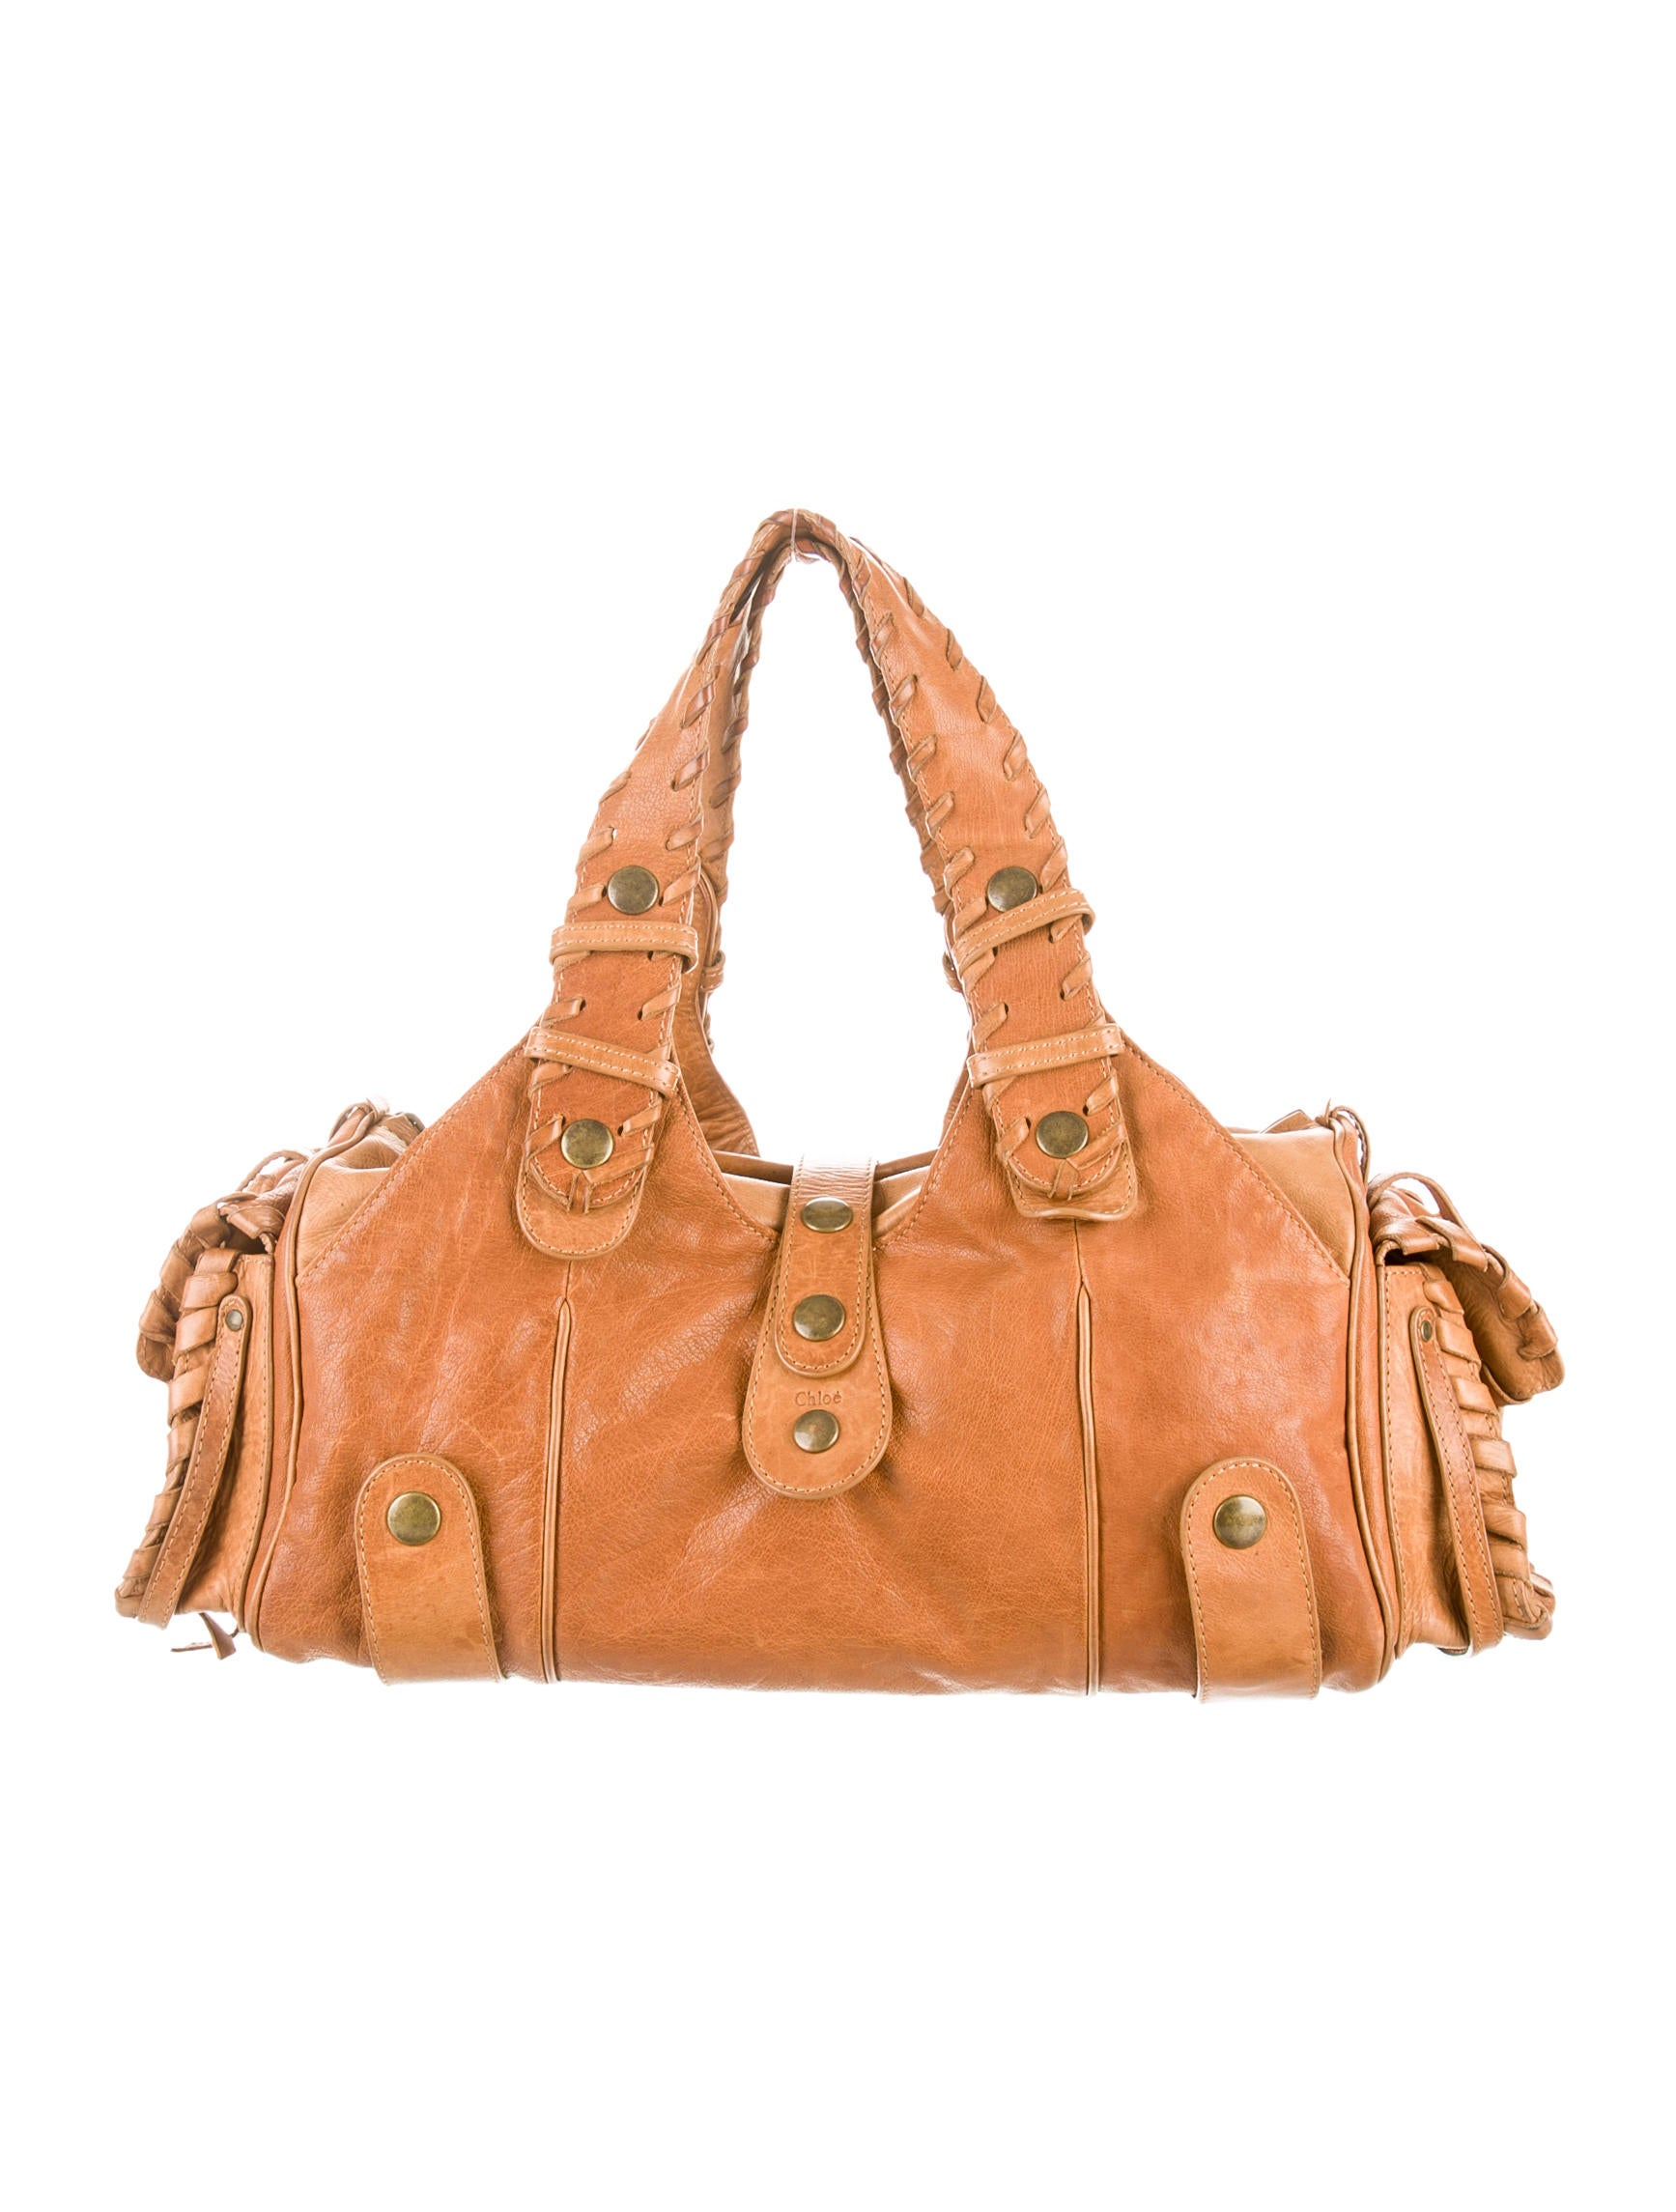 where to buy chloe bags - chloe distressed leather shoulder bag, chloe factory outlet